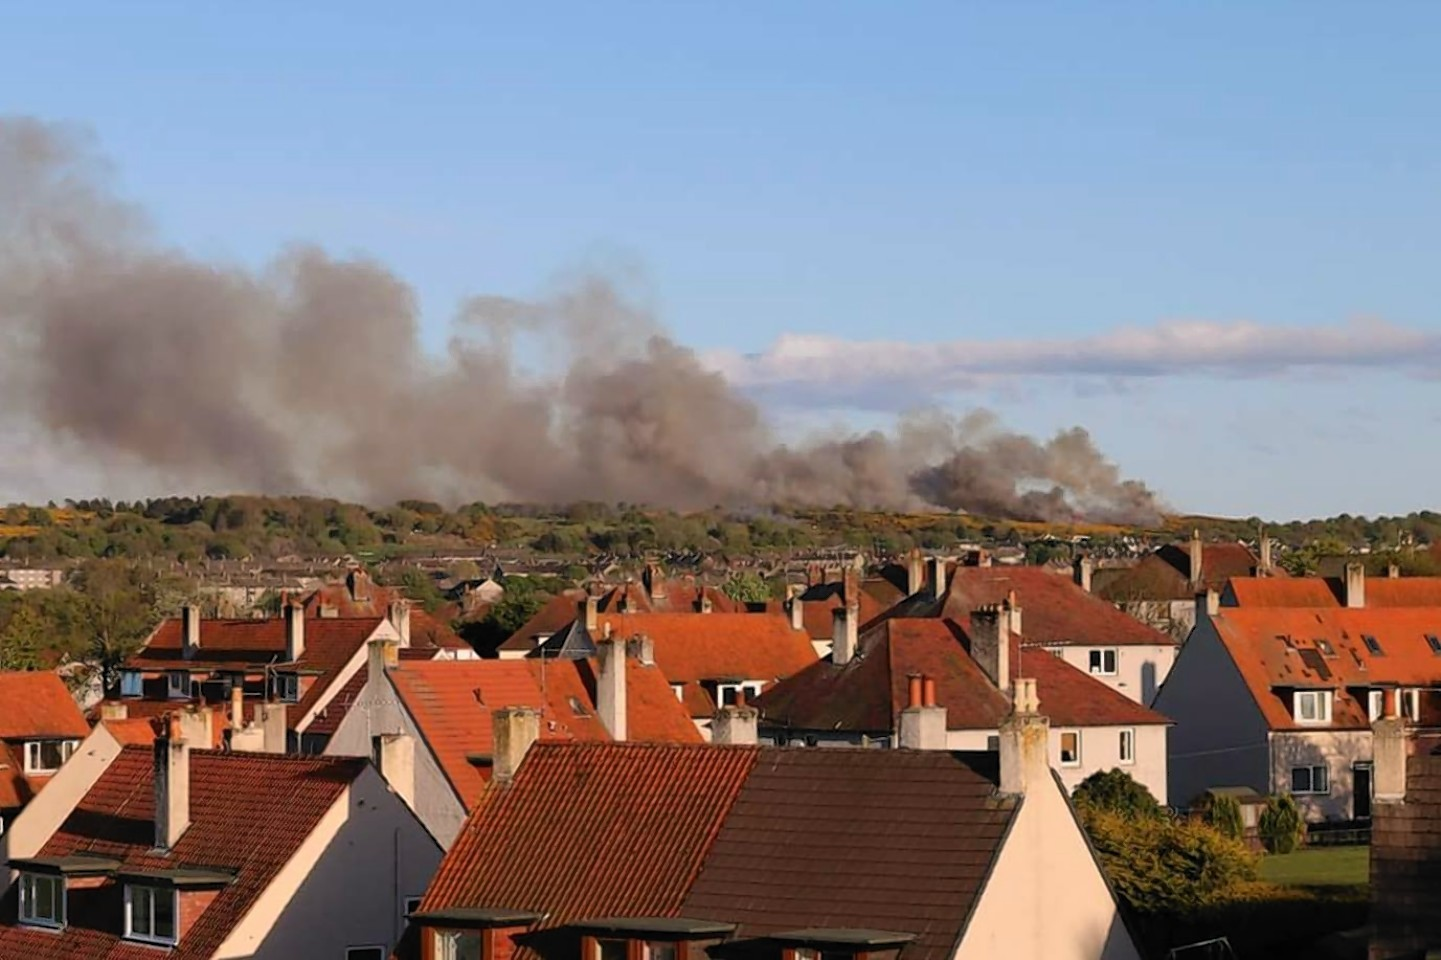 The massive grass fire at Kincorth could be seen across Aberdeen